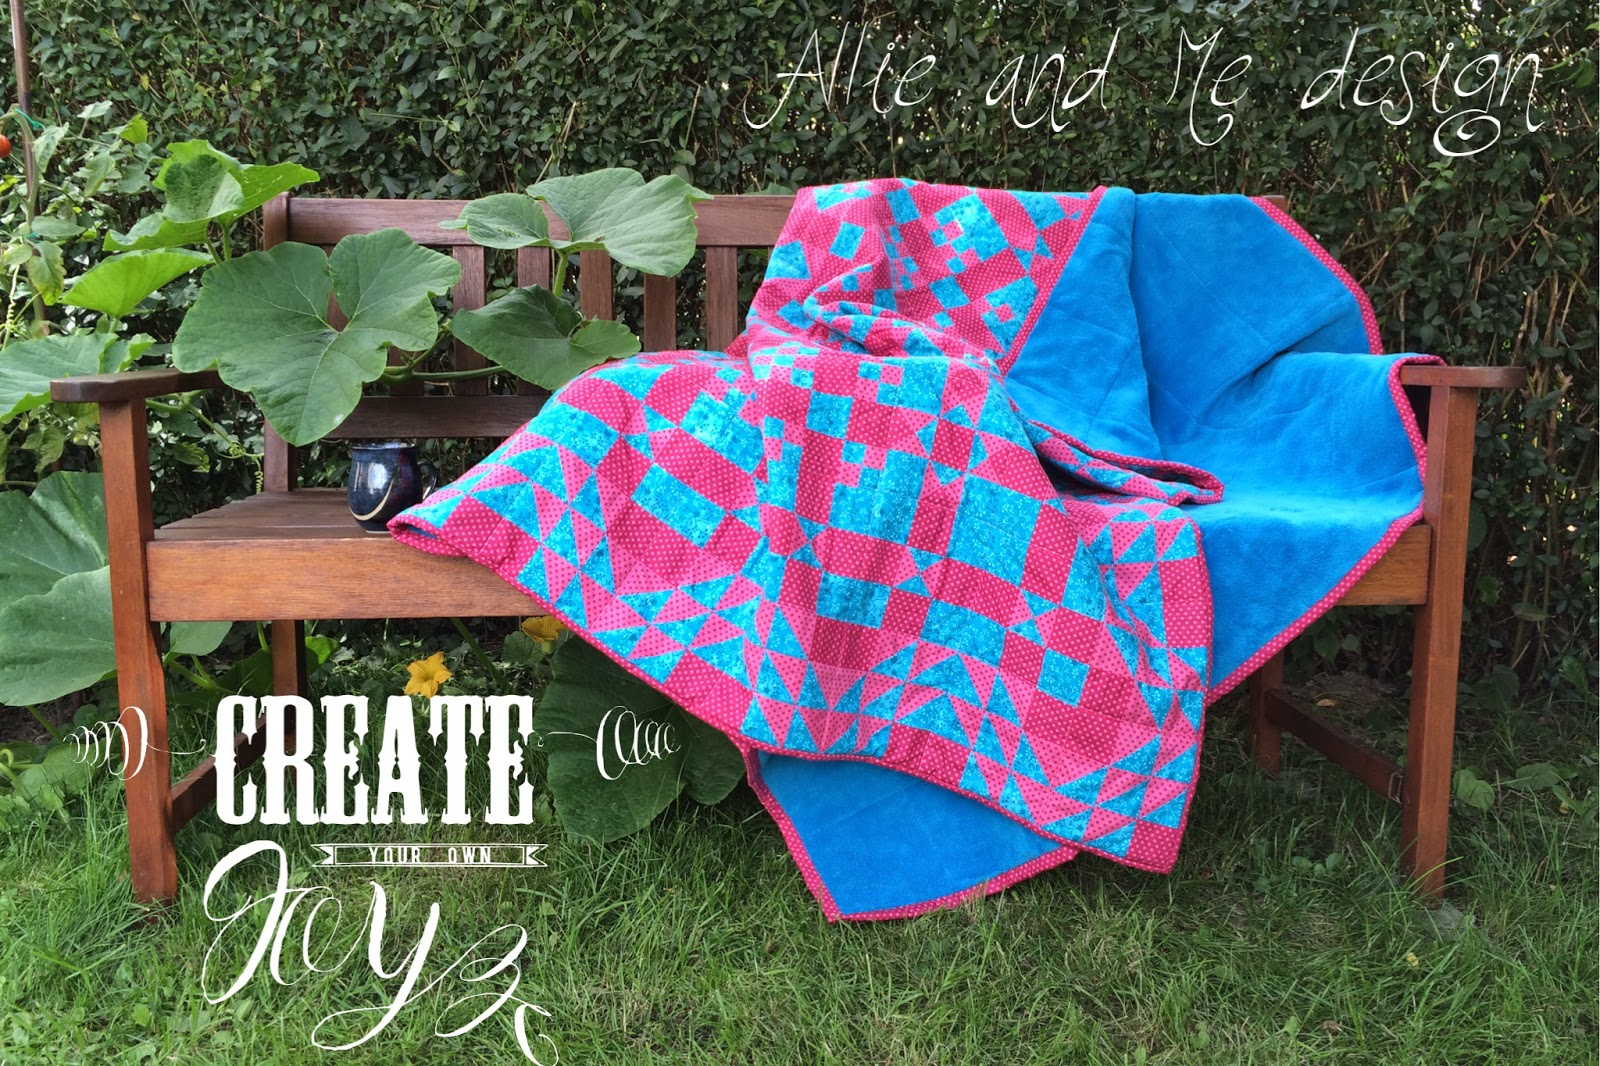 http://allie-and-me-design.blogspot.de/2014/08/mein-mystery-quilt.html